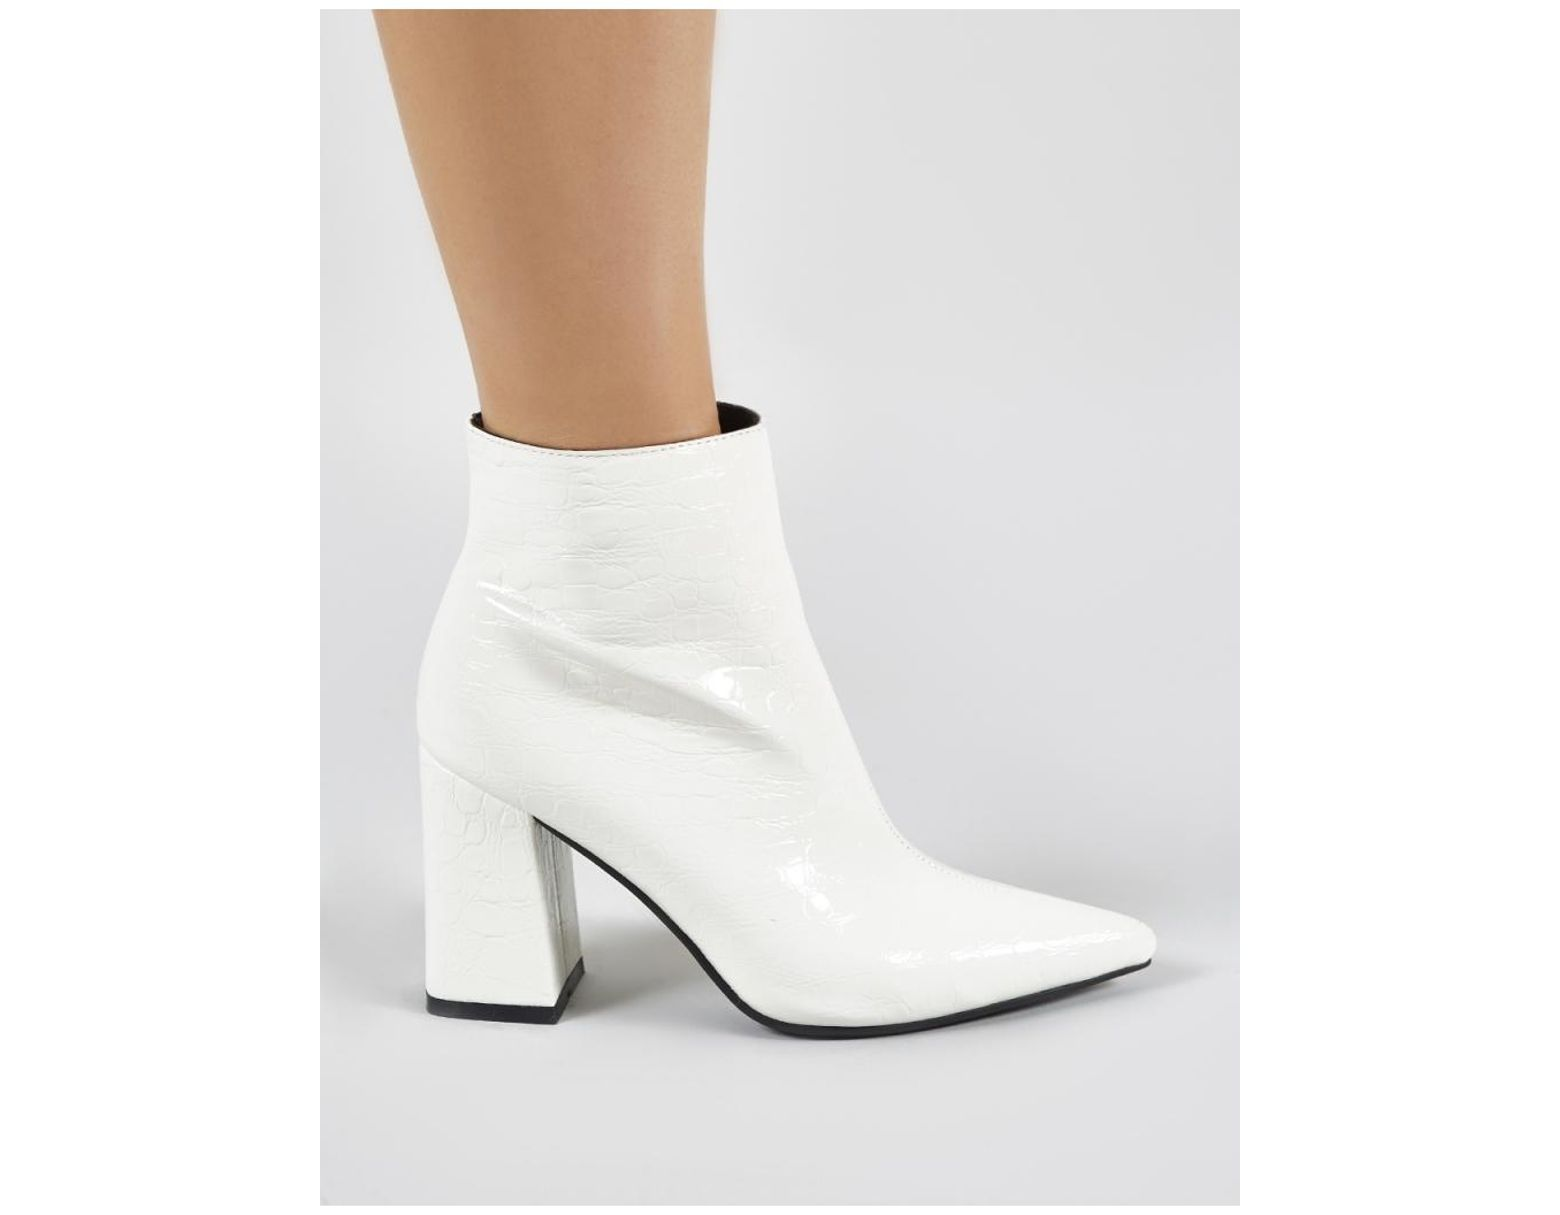 ed8ce4489a9 Public Desire Hollie Pointed Toe Ankle Boots In White Croc in White - Save  36% - Lyst